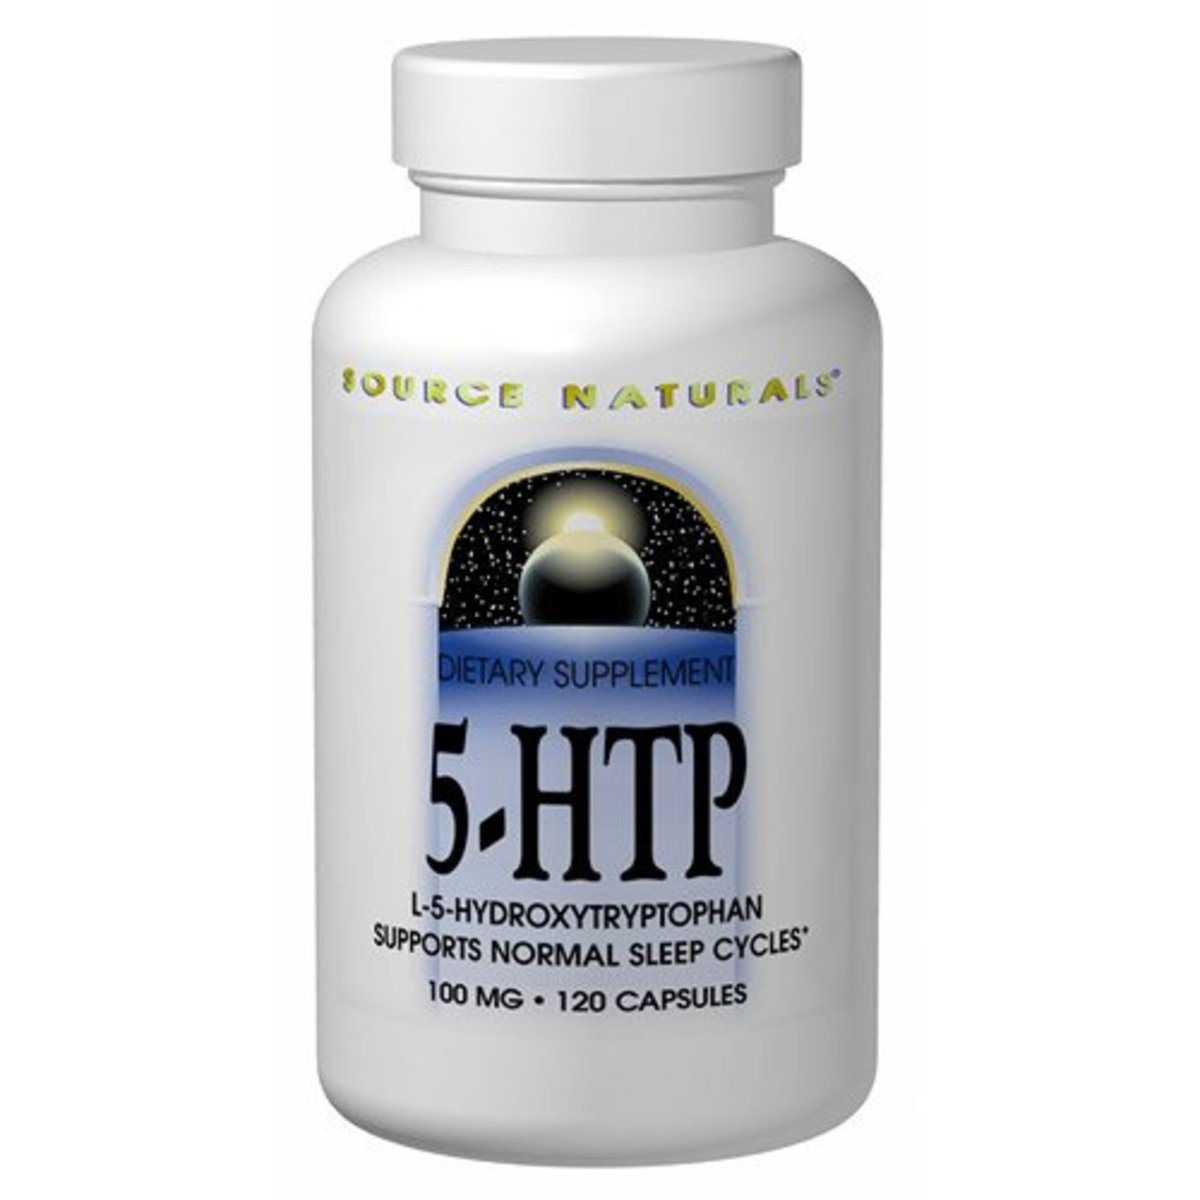 Serotonin dietary supplement